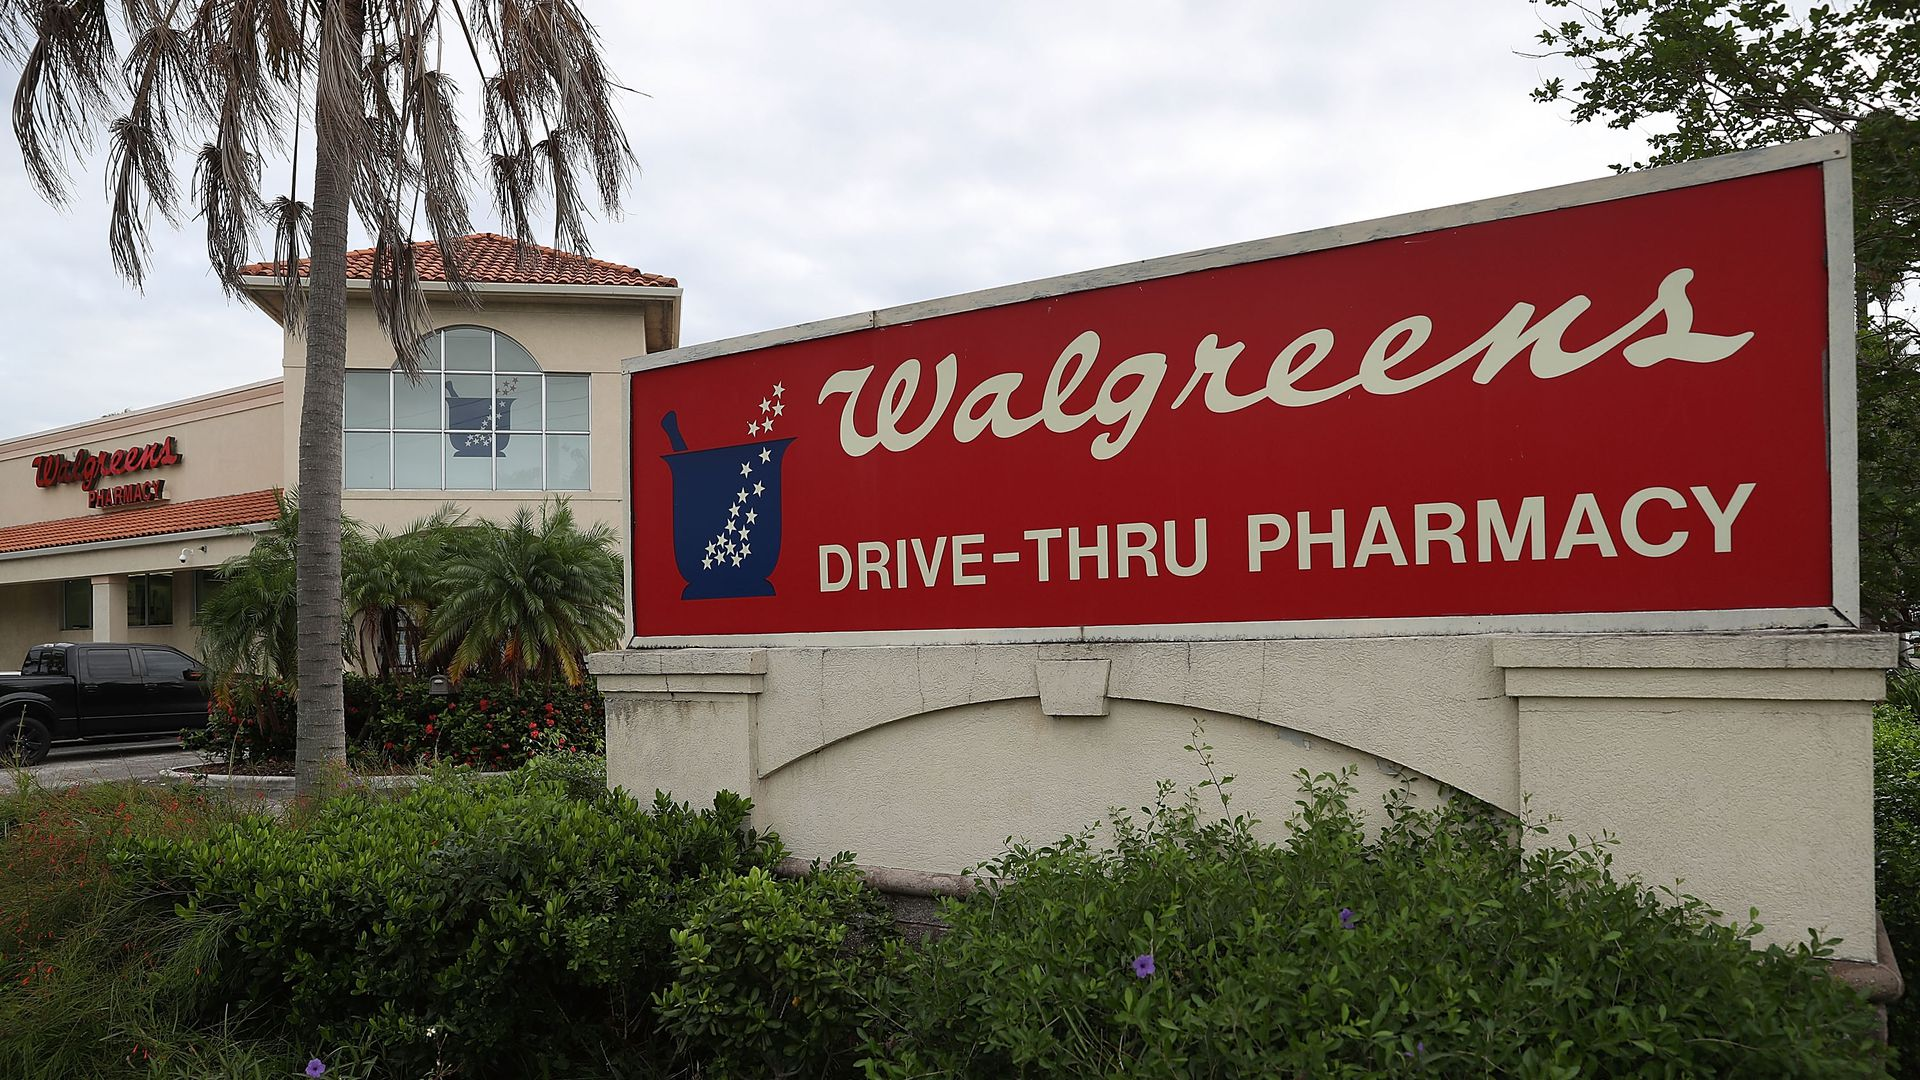 Walgreens pharmacy sign in front of the store